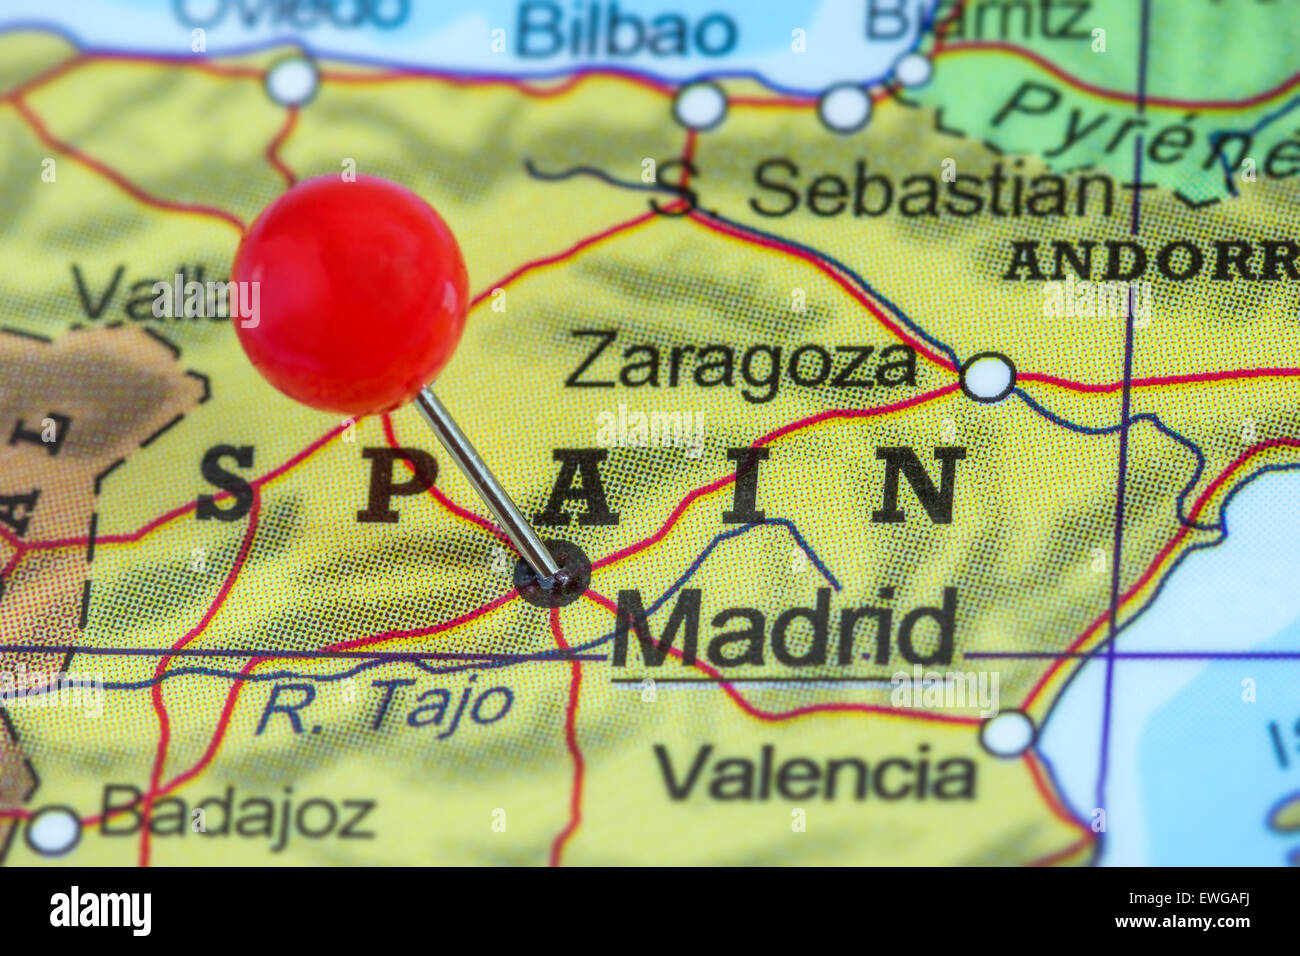 Madrid Map Of Spain.Close Up Of A Red Pushpin On A Map Of Madrid Spain Stock Photo